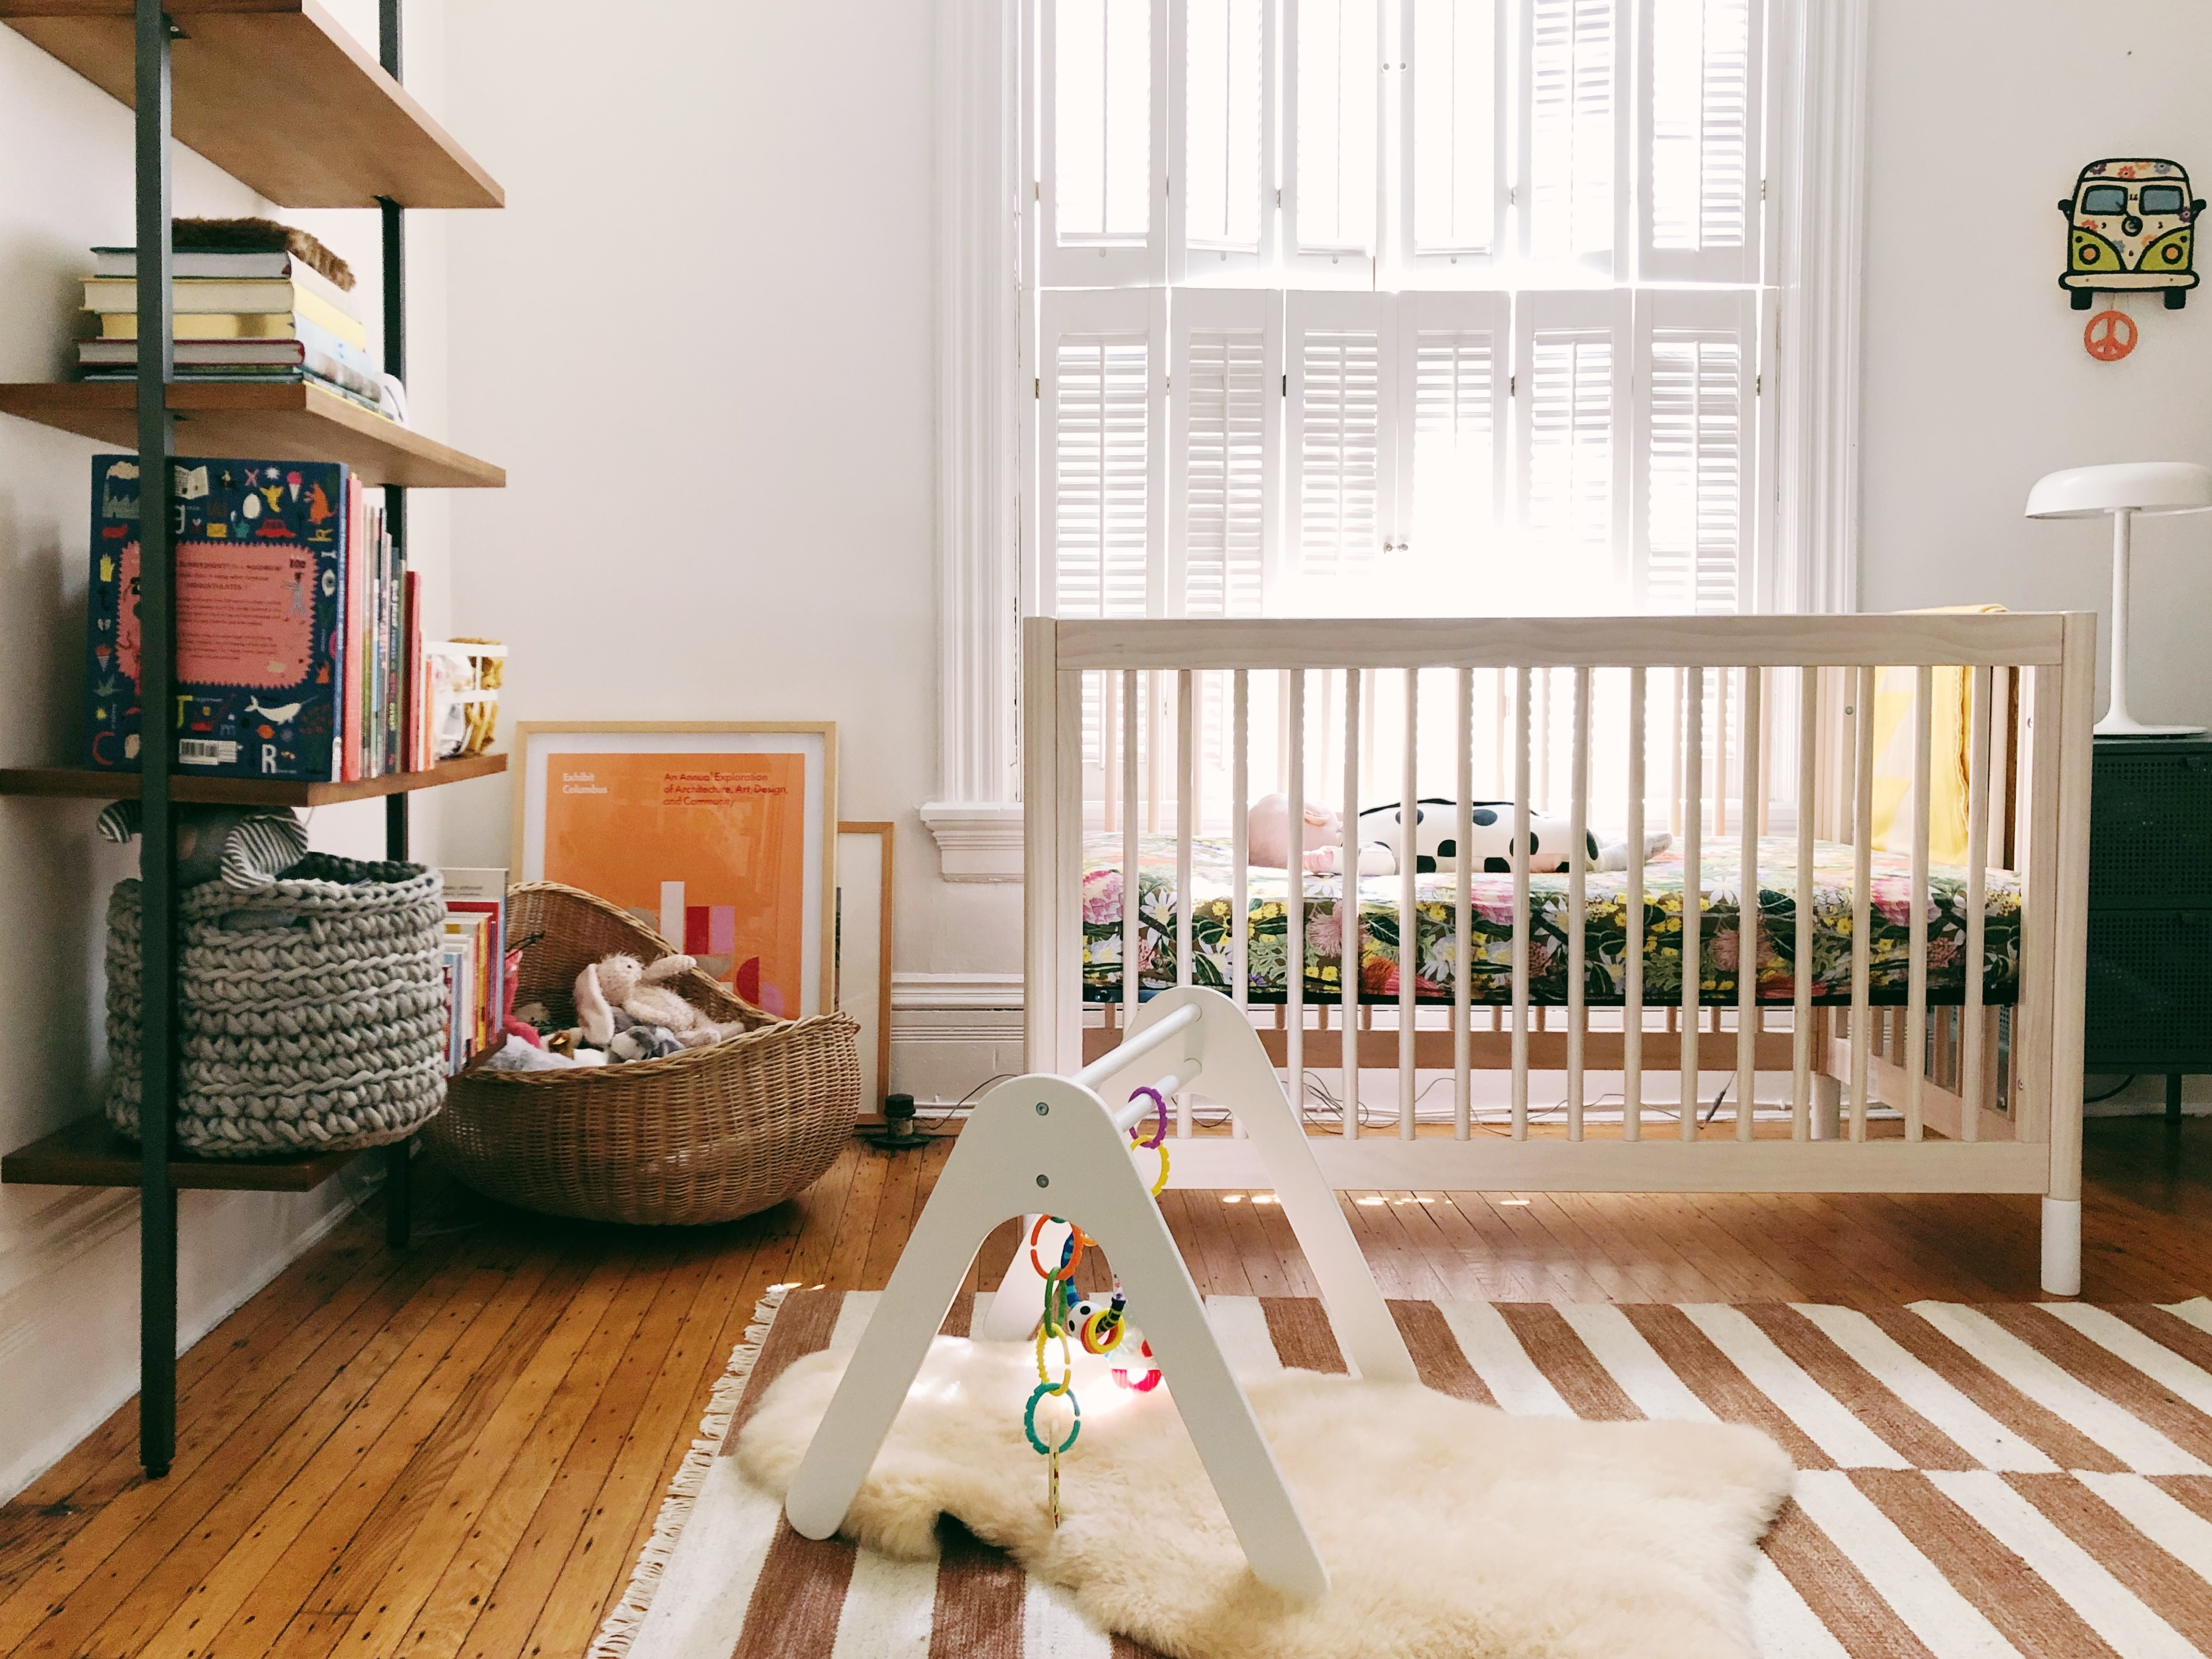 A white-walled room contains a white crib with a baby in it, a bookshelf holding books and a basket, a brown and white striped area carpet on a hardwood floor, and a white baby's jungle gym.